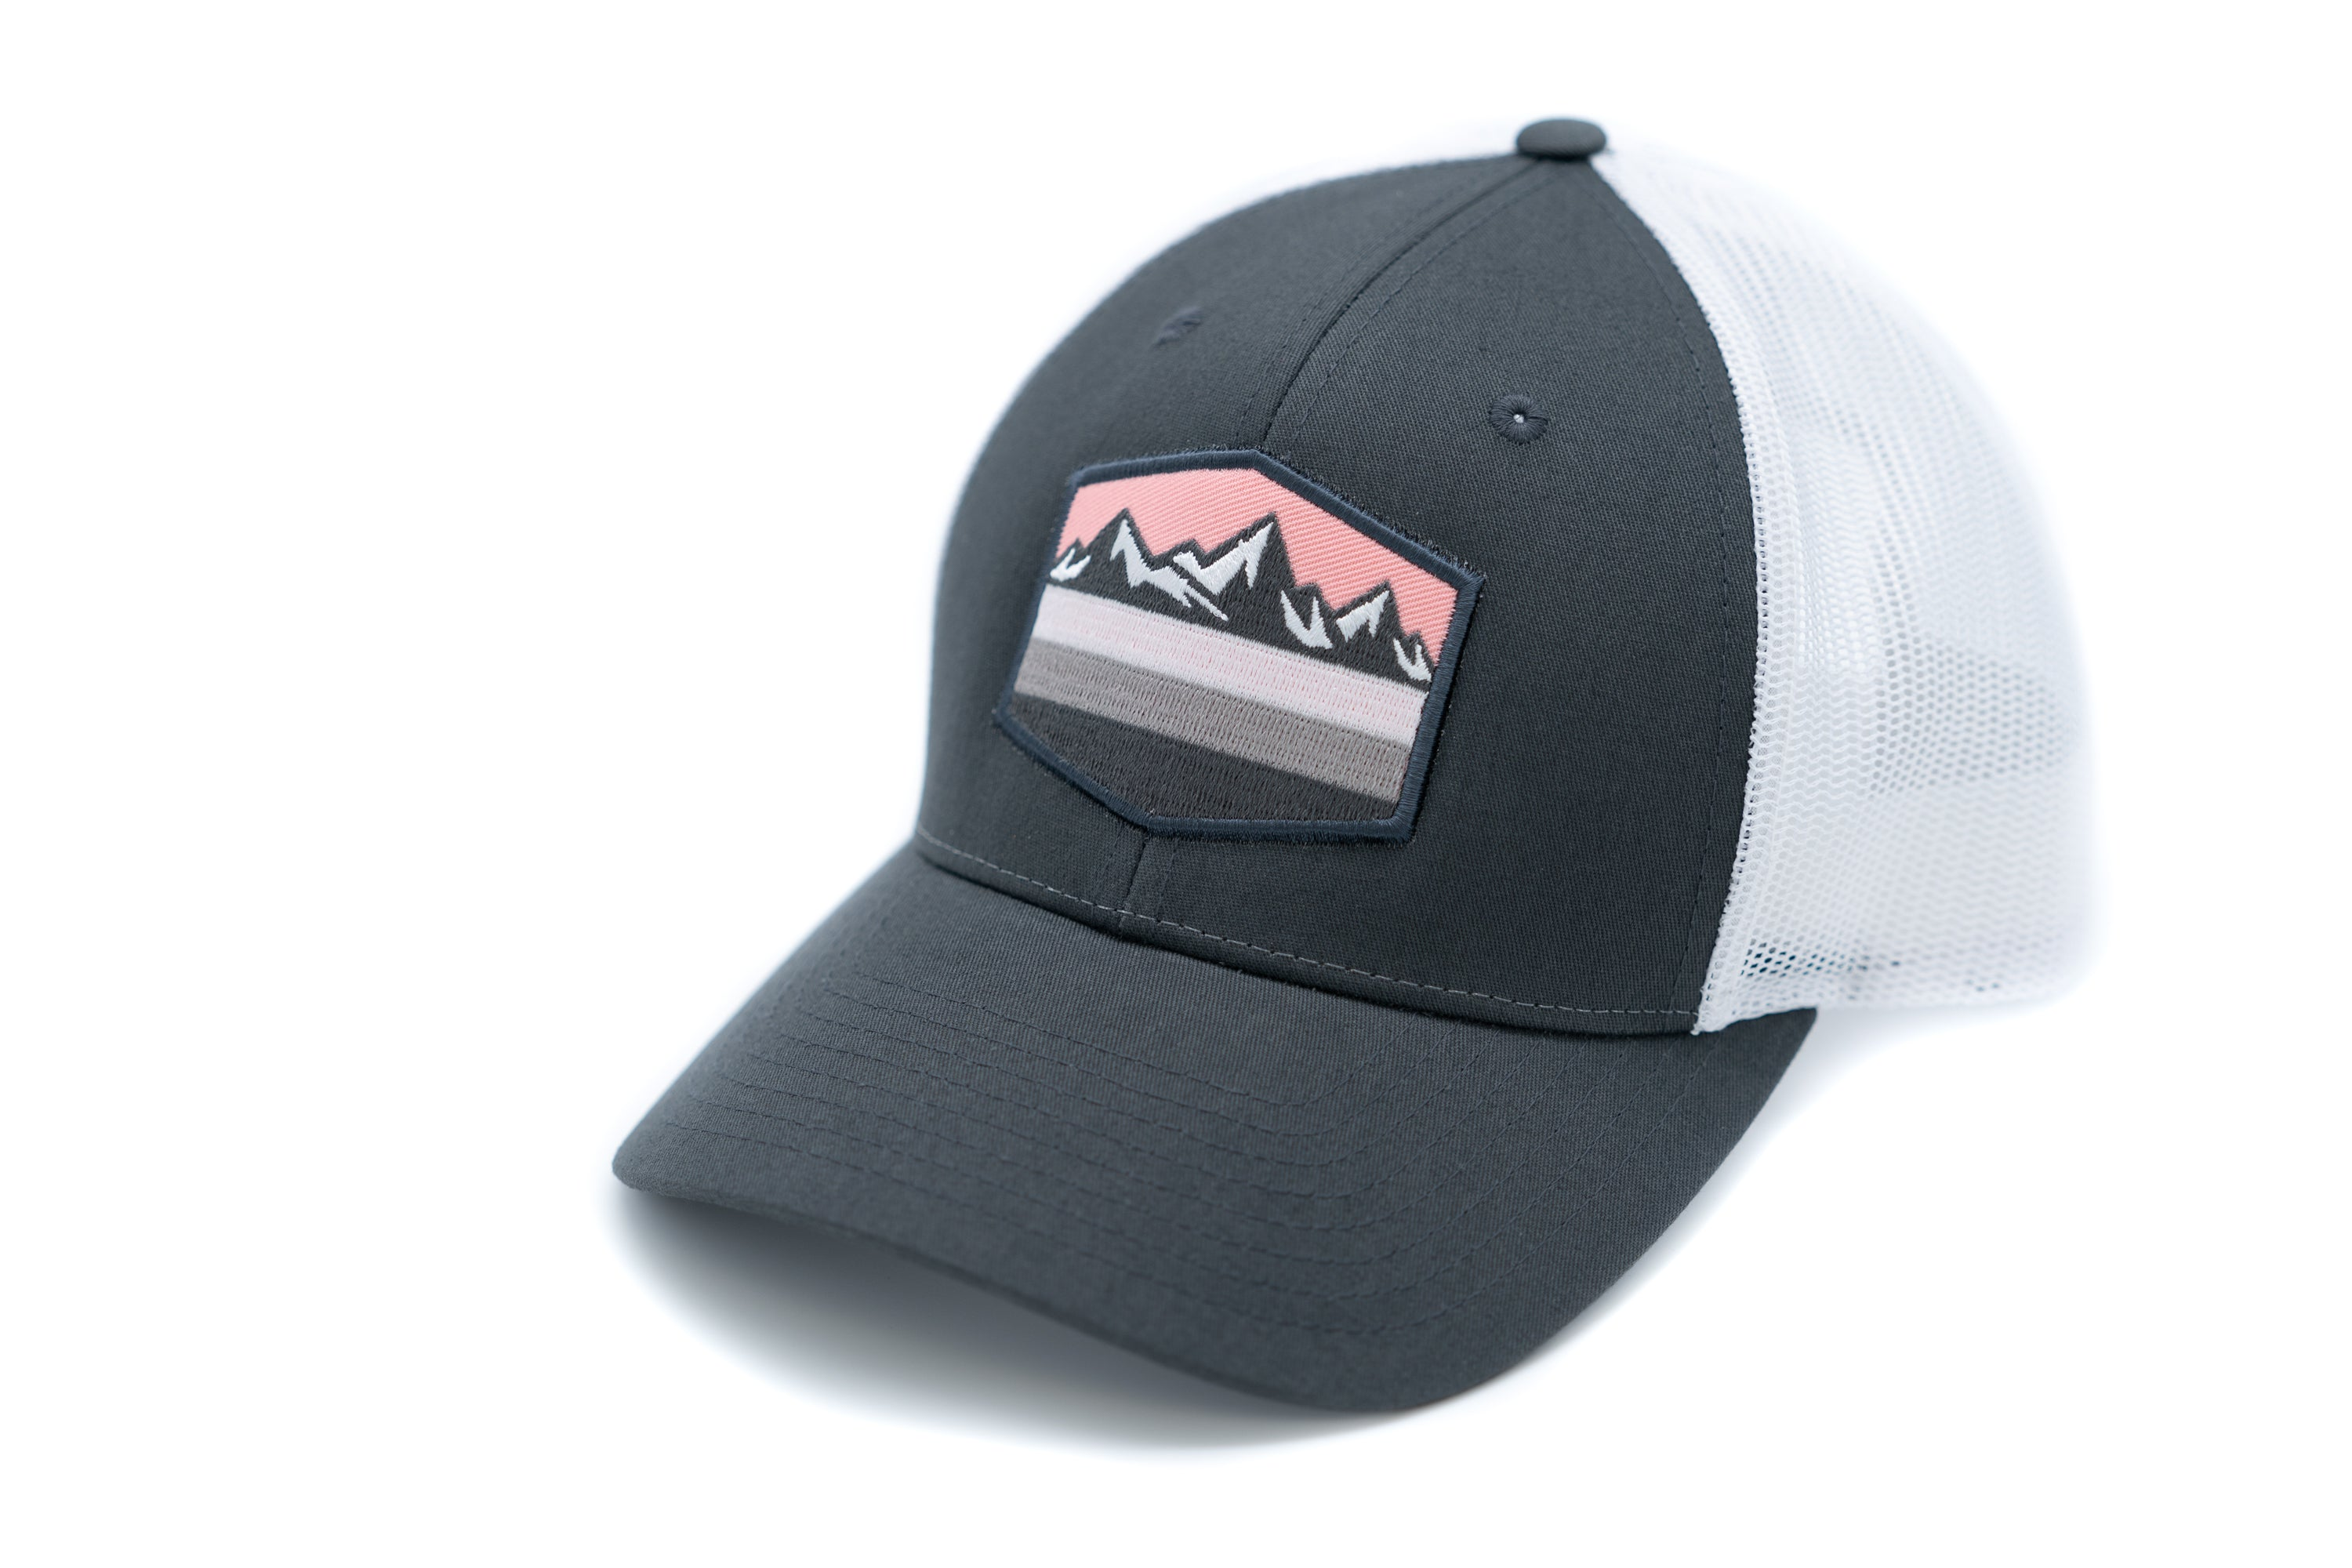 Low Profile Snapback Trucker Hat With Embroidered Mountain and Pink Sky Patch - Charcoal Brim and Front Panel With White Mesh Back